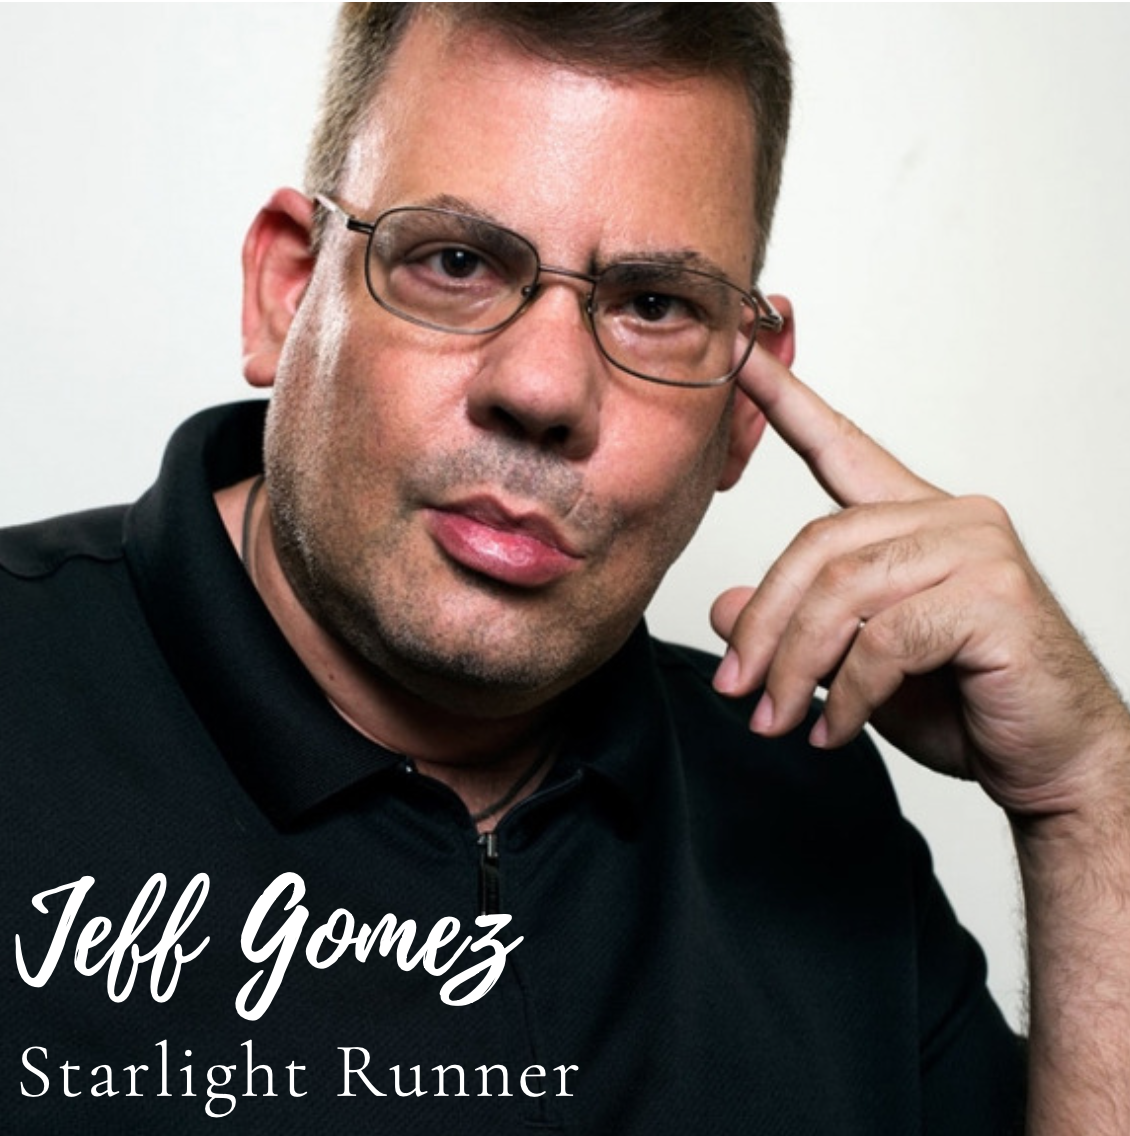 The Movement Is Now - Jeff Gomez is CEO of Starlight Runner and one of the world's leading experts in story and narrative design. He works with C-suite executives, creative visionaries, and global leaders to maximize the effectiveness of brand narratives, develop vast fictional story worlds, and design highly successful transmedia franchises. Jeff has teamed with top creators on such blockbuster properties as Avatar, Halo, Pirates of the Caribbean, and Spider-Man. Concerned about the ways in which story is being used to foment authoritarianism and extreme beliefs, Jeff has also adapted his techniques to the Collective Journey narrative model, which has been applied toward the resolution of crises in Mexico, Colombia, and Australia.